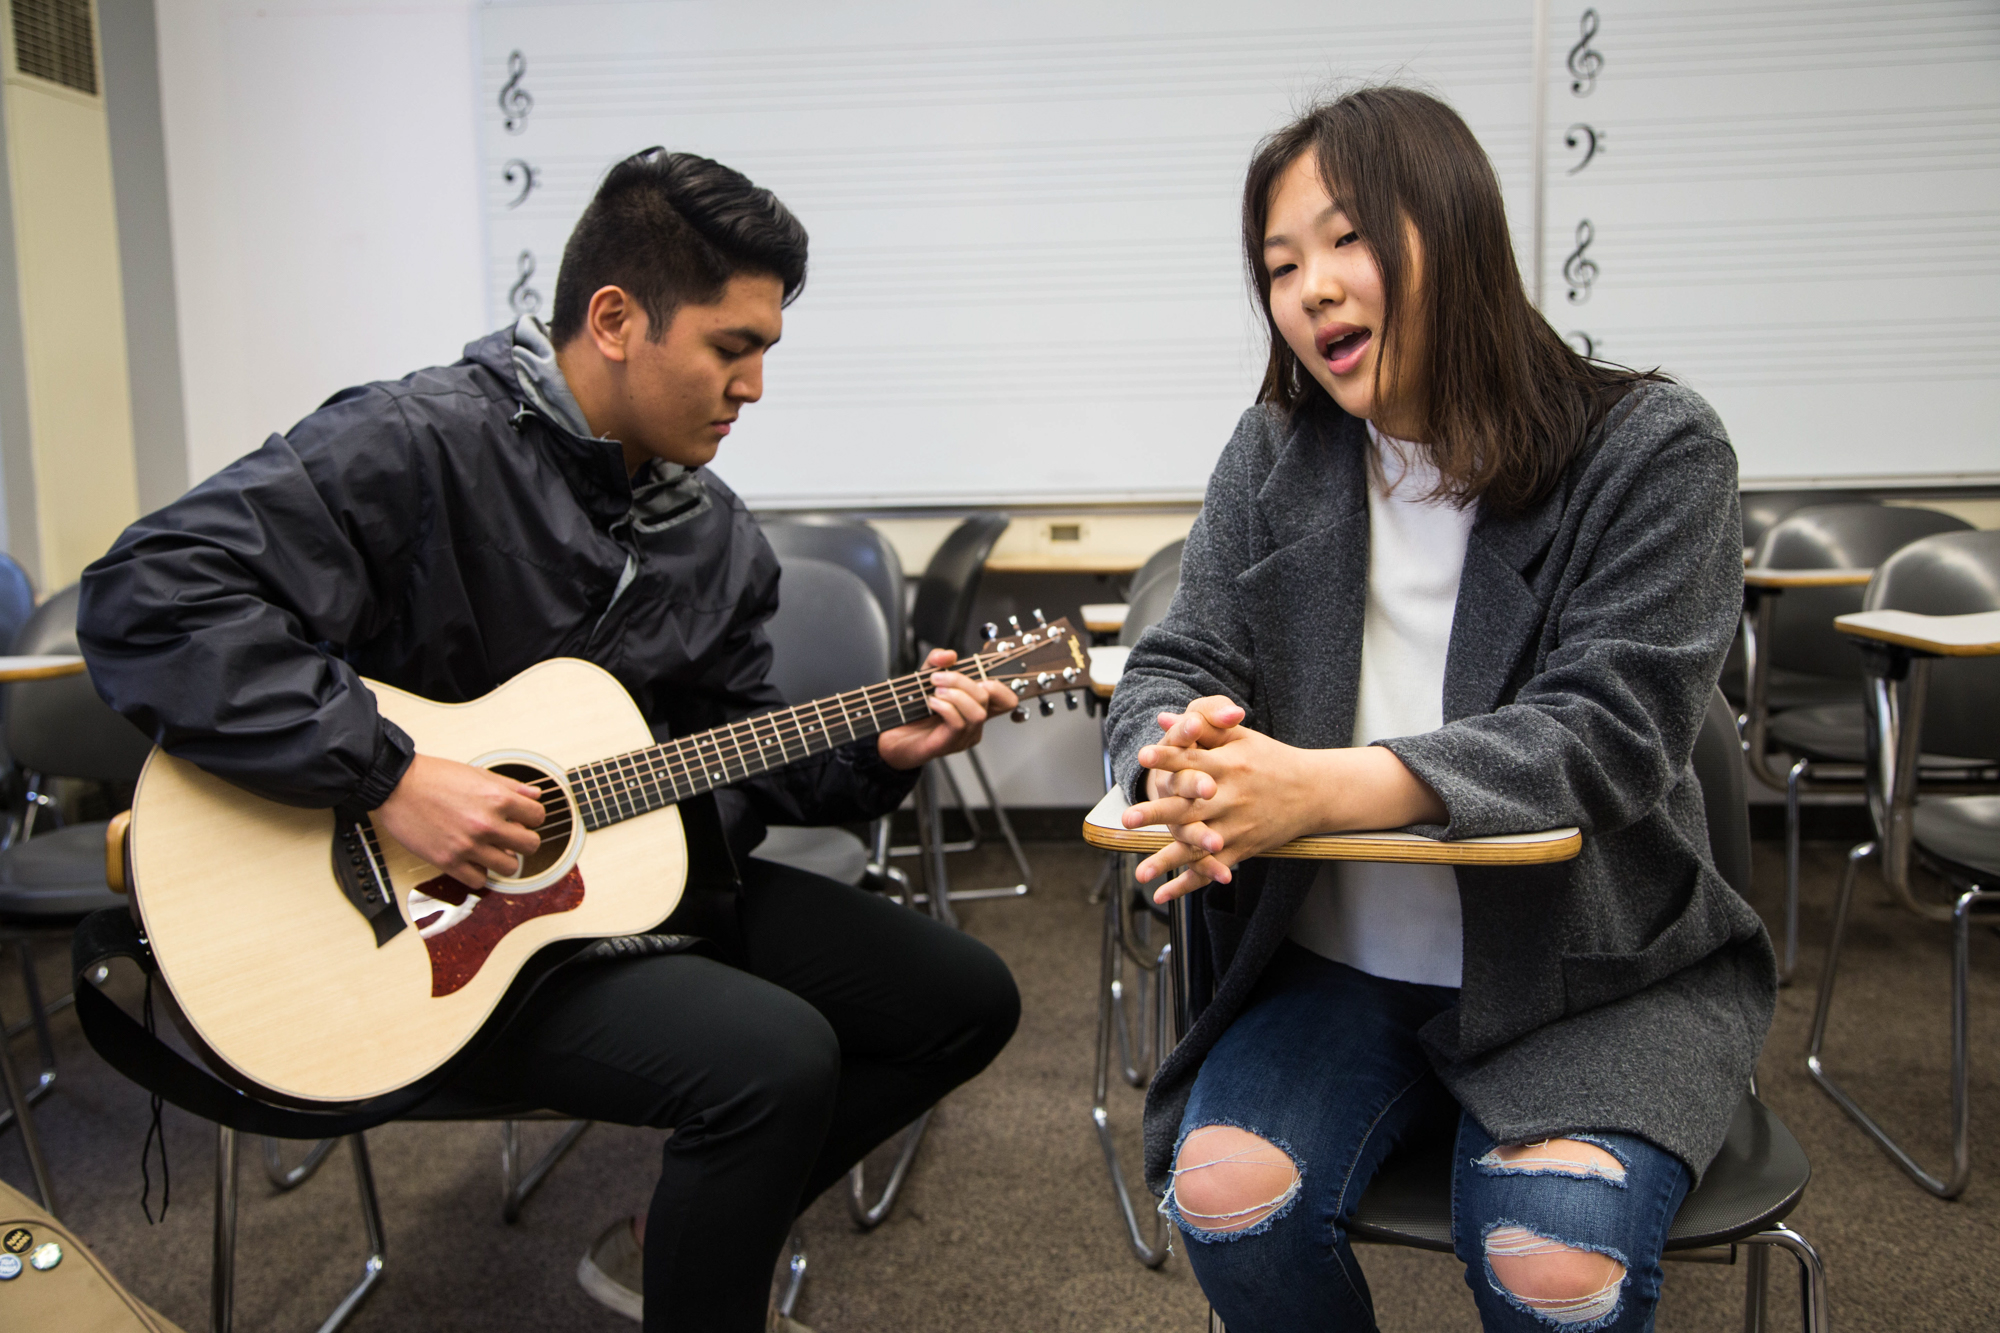 Club members Jai won Chio and Luis Emmanuel Panotes performing during club meeting, Thursday, March 22, 2018, at Santa Monica College's Performance Arts Center in Santa Monica, California (Zeynep Abes/ Corsair Photo)